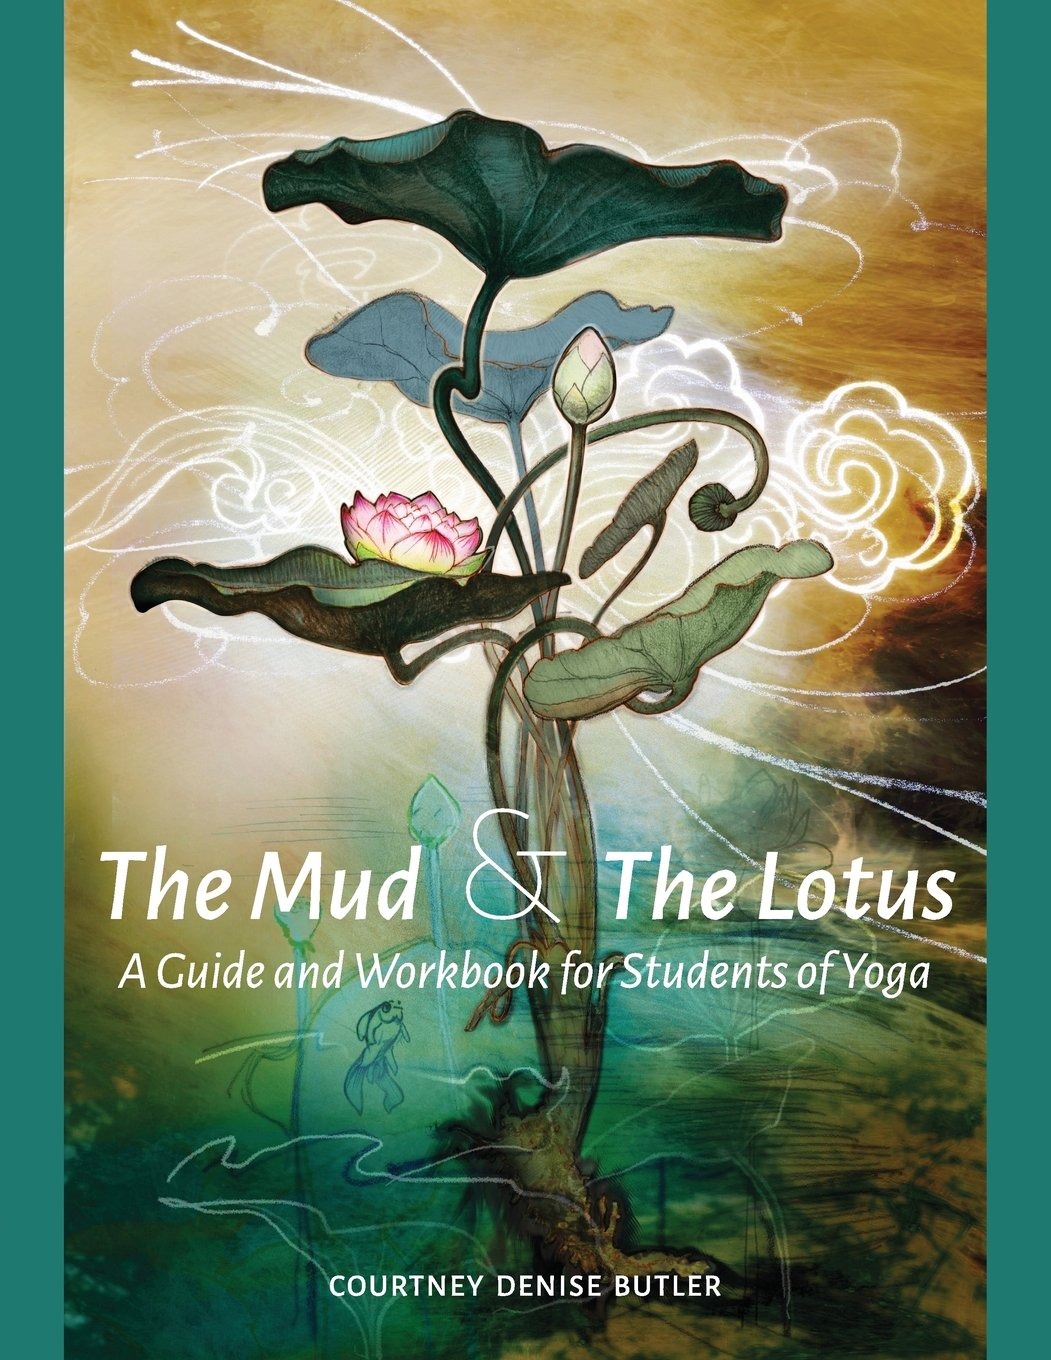 The Mud The Lotus A Guide And Workbook For Students Of Yoga